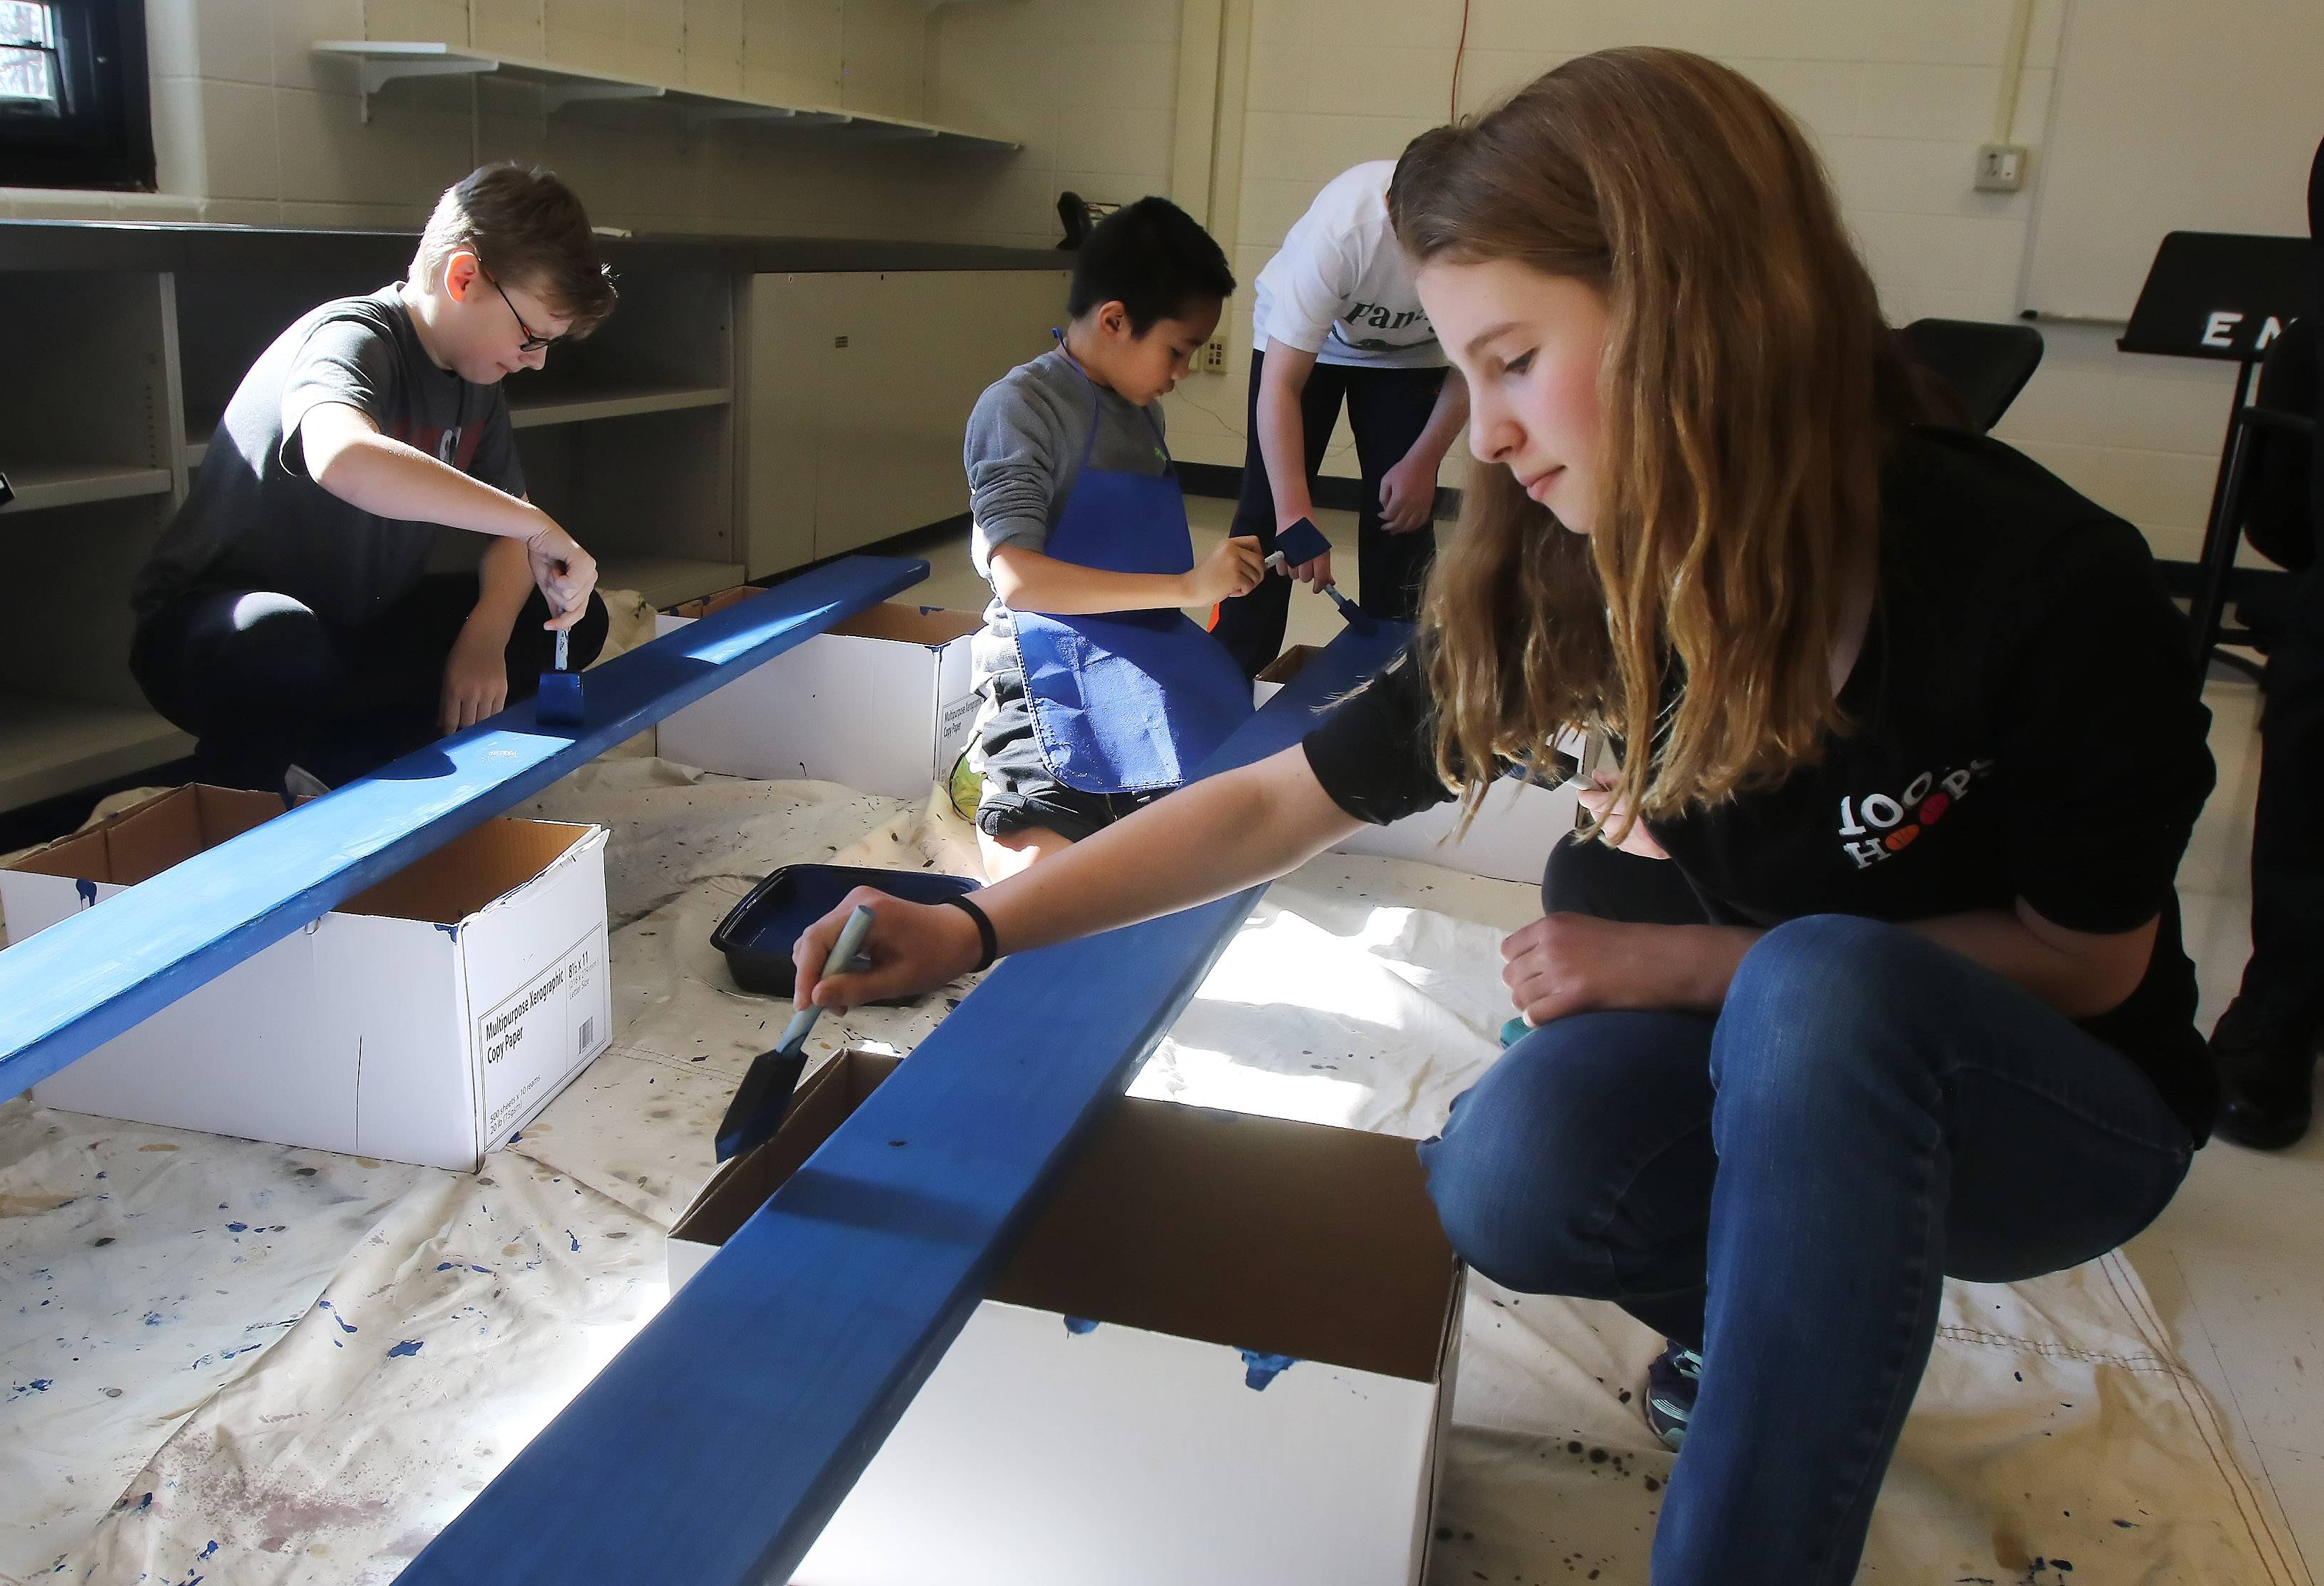 Vernon Hills' school Buddy Bench to help lonely students make friends